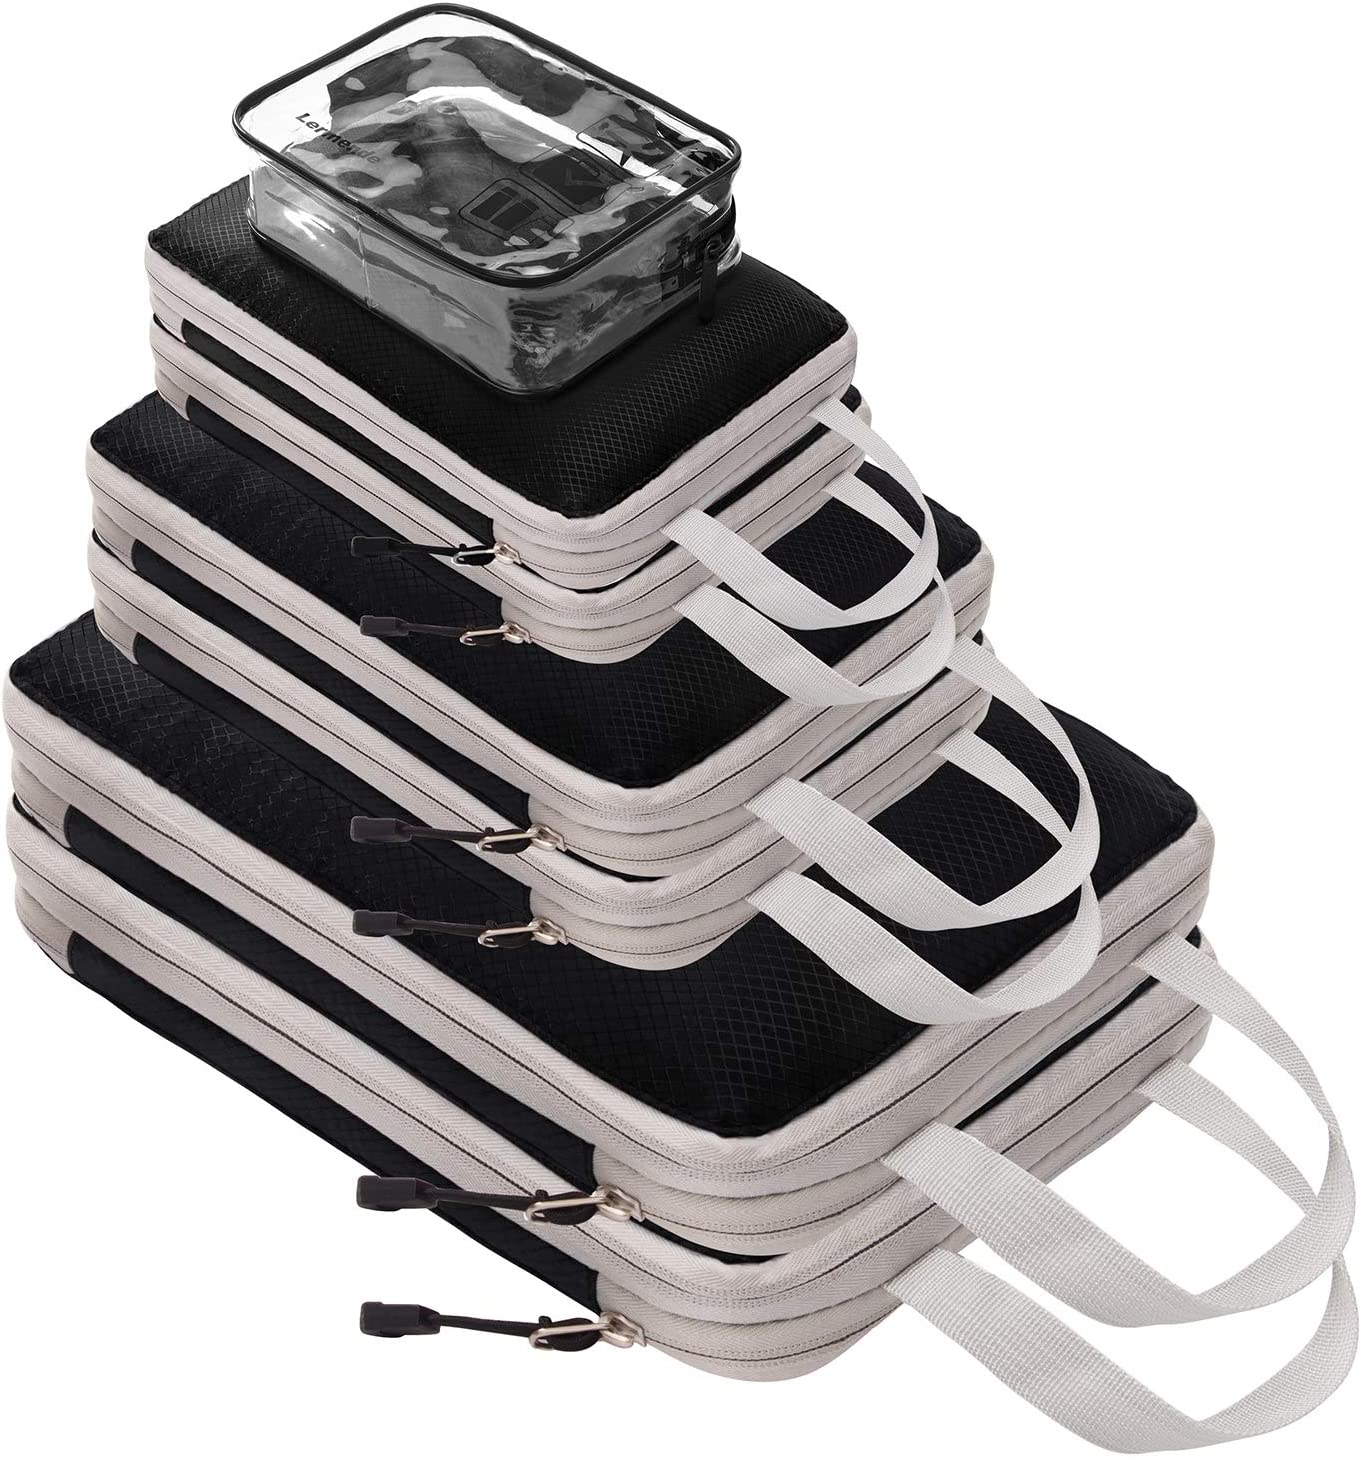 Free Amazon Promo Code 2020 for Compression Packing Cubes